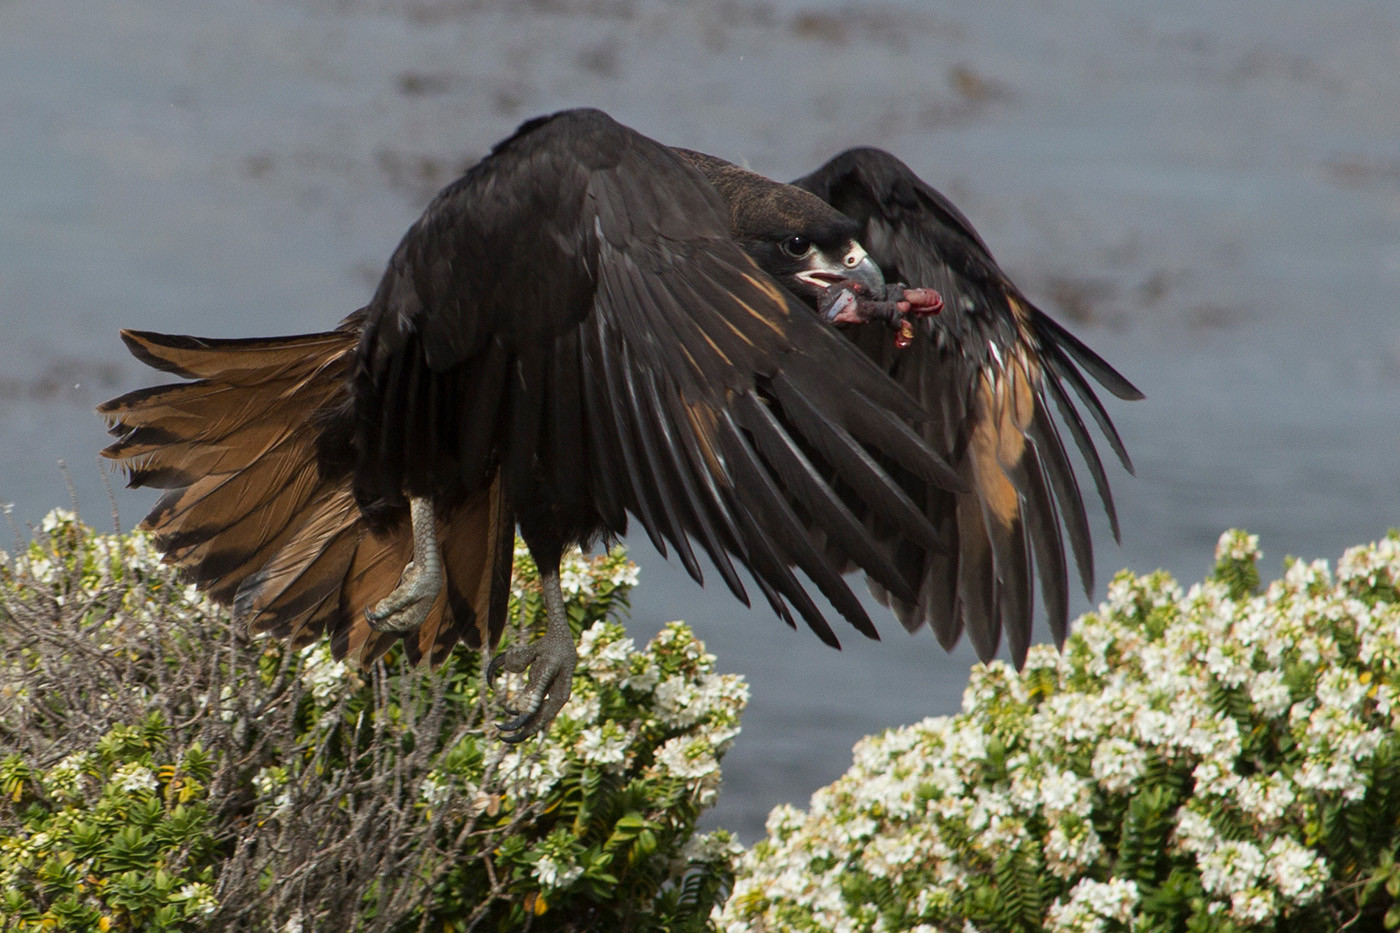 GROUP 1 19 CARACARA WITH CORMORANT CHICK by John Hunt